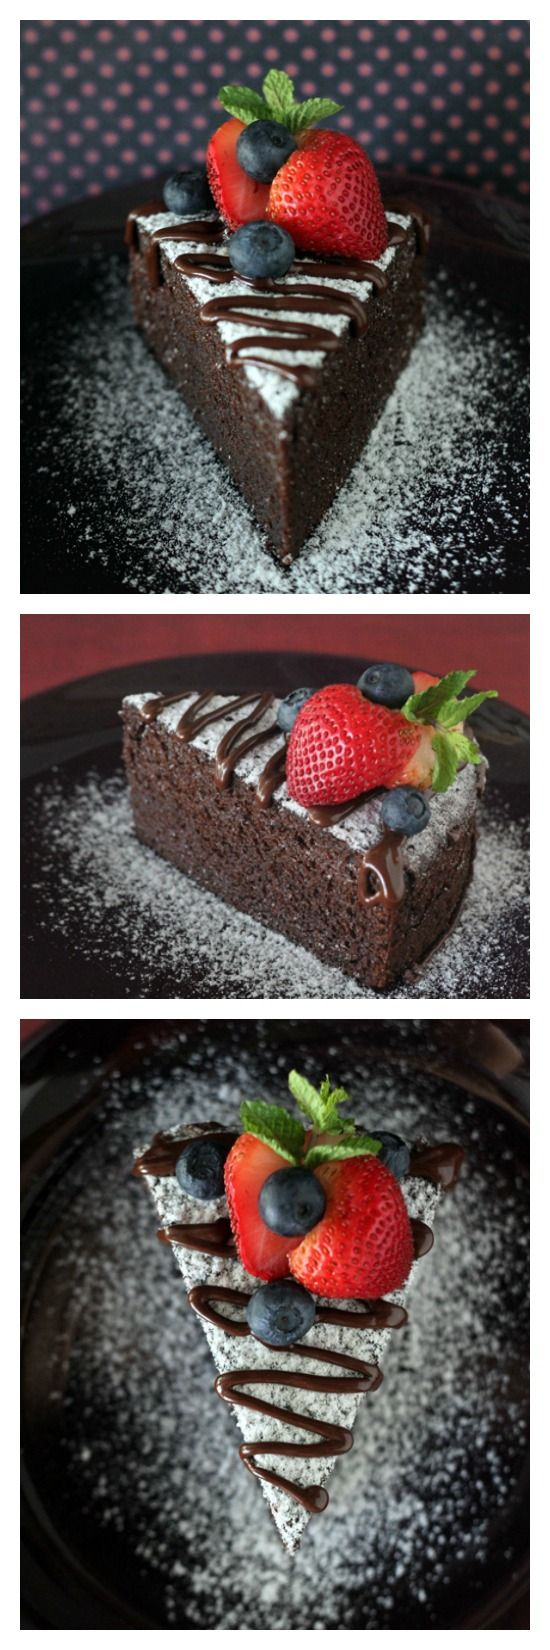 NO-BAKE Chocolate Cake, yes, you steam the cake. Moist, soft, and decadent chocolate cake is possible without an oven! Try the recipe today.